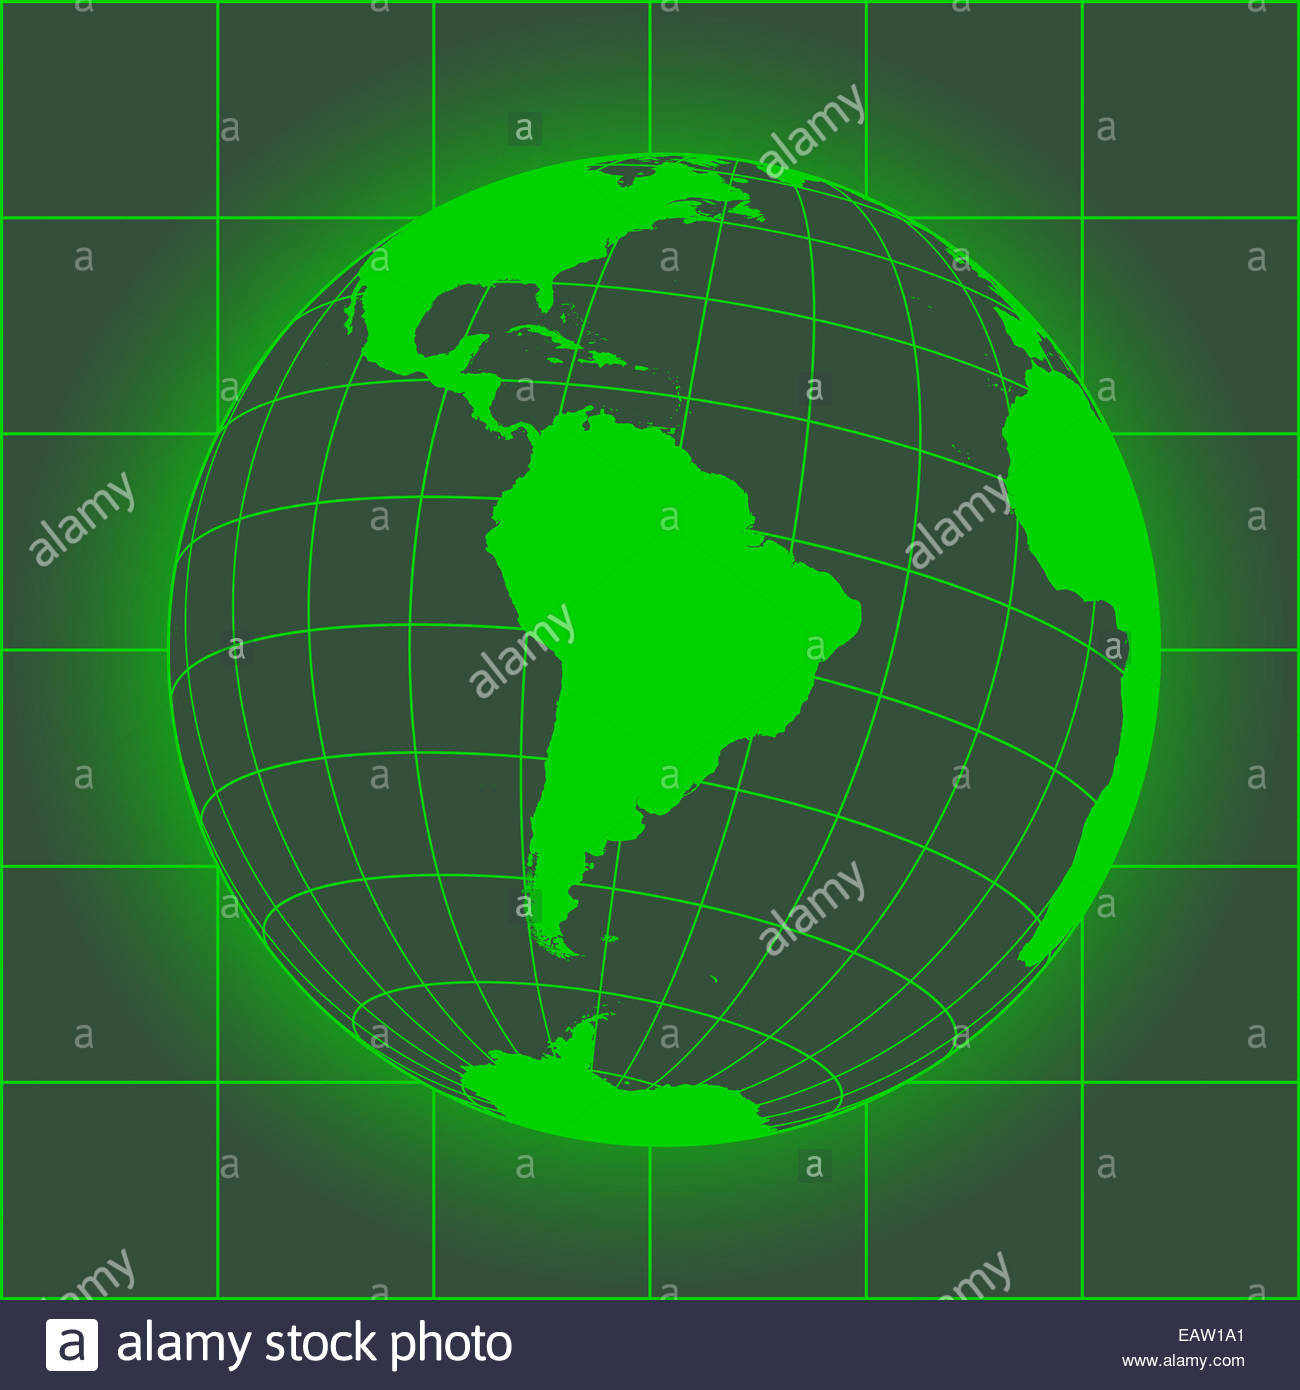 Green south america map antarctica north america africa earth green south america map antarctica north america africa earth globe old style world map gumiabroncs Gallery